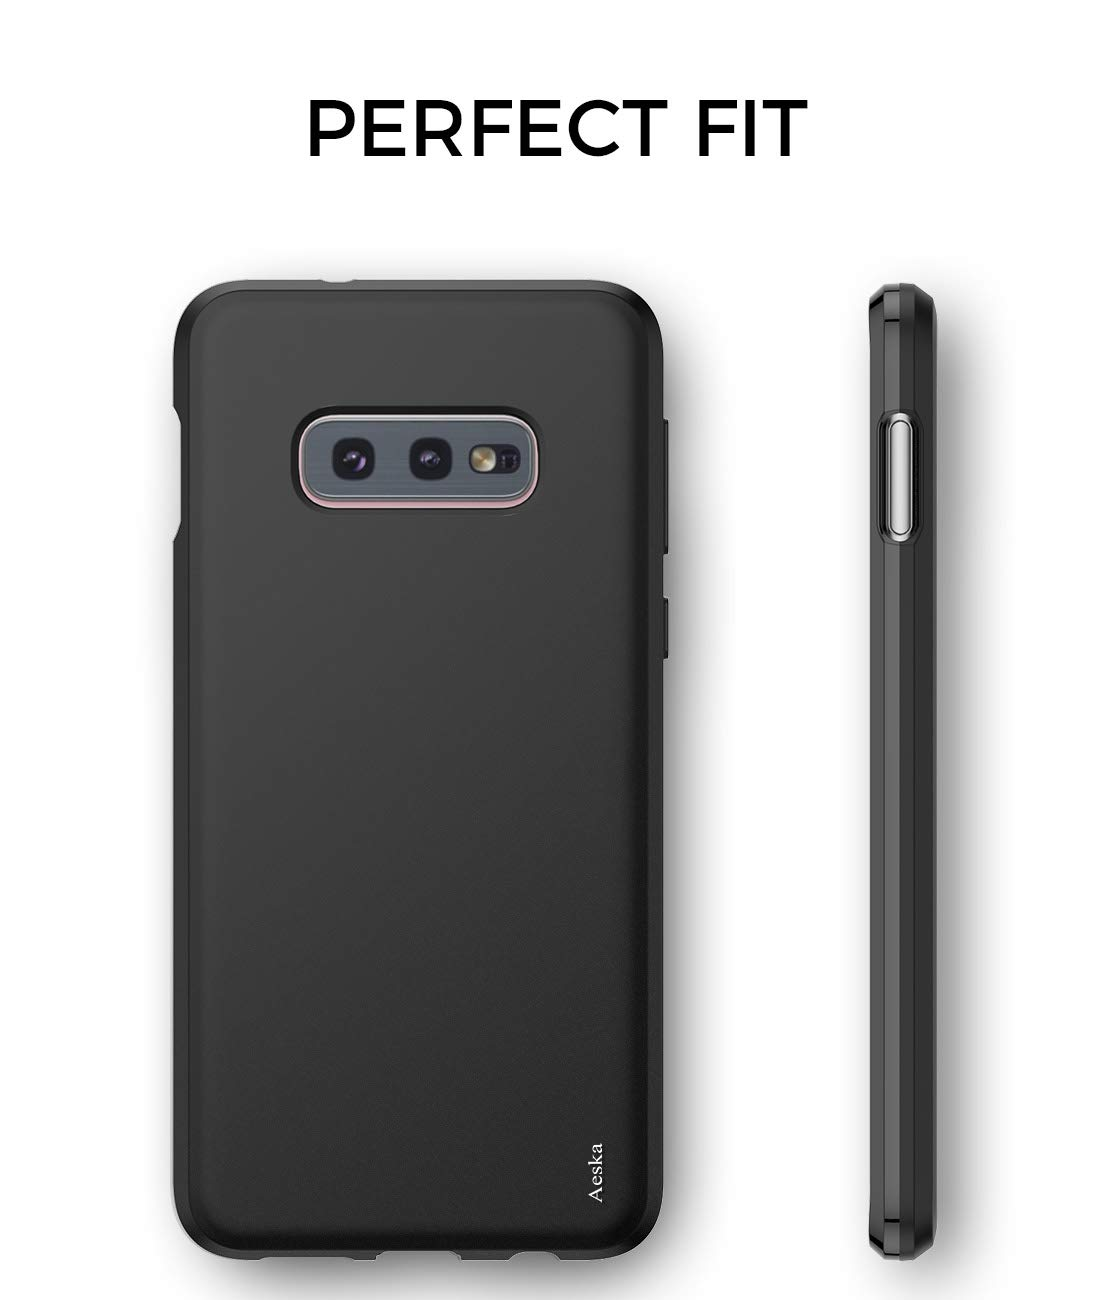 Galaxy S10 Lite Case, Aeska Ultra [Slim Thin] Flexible TPU Gel Rubber Soft Skin Silicone Protective Case Cover Compatible for Samsung Galaxy S10 Lite